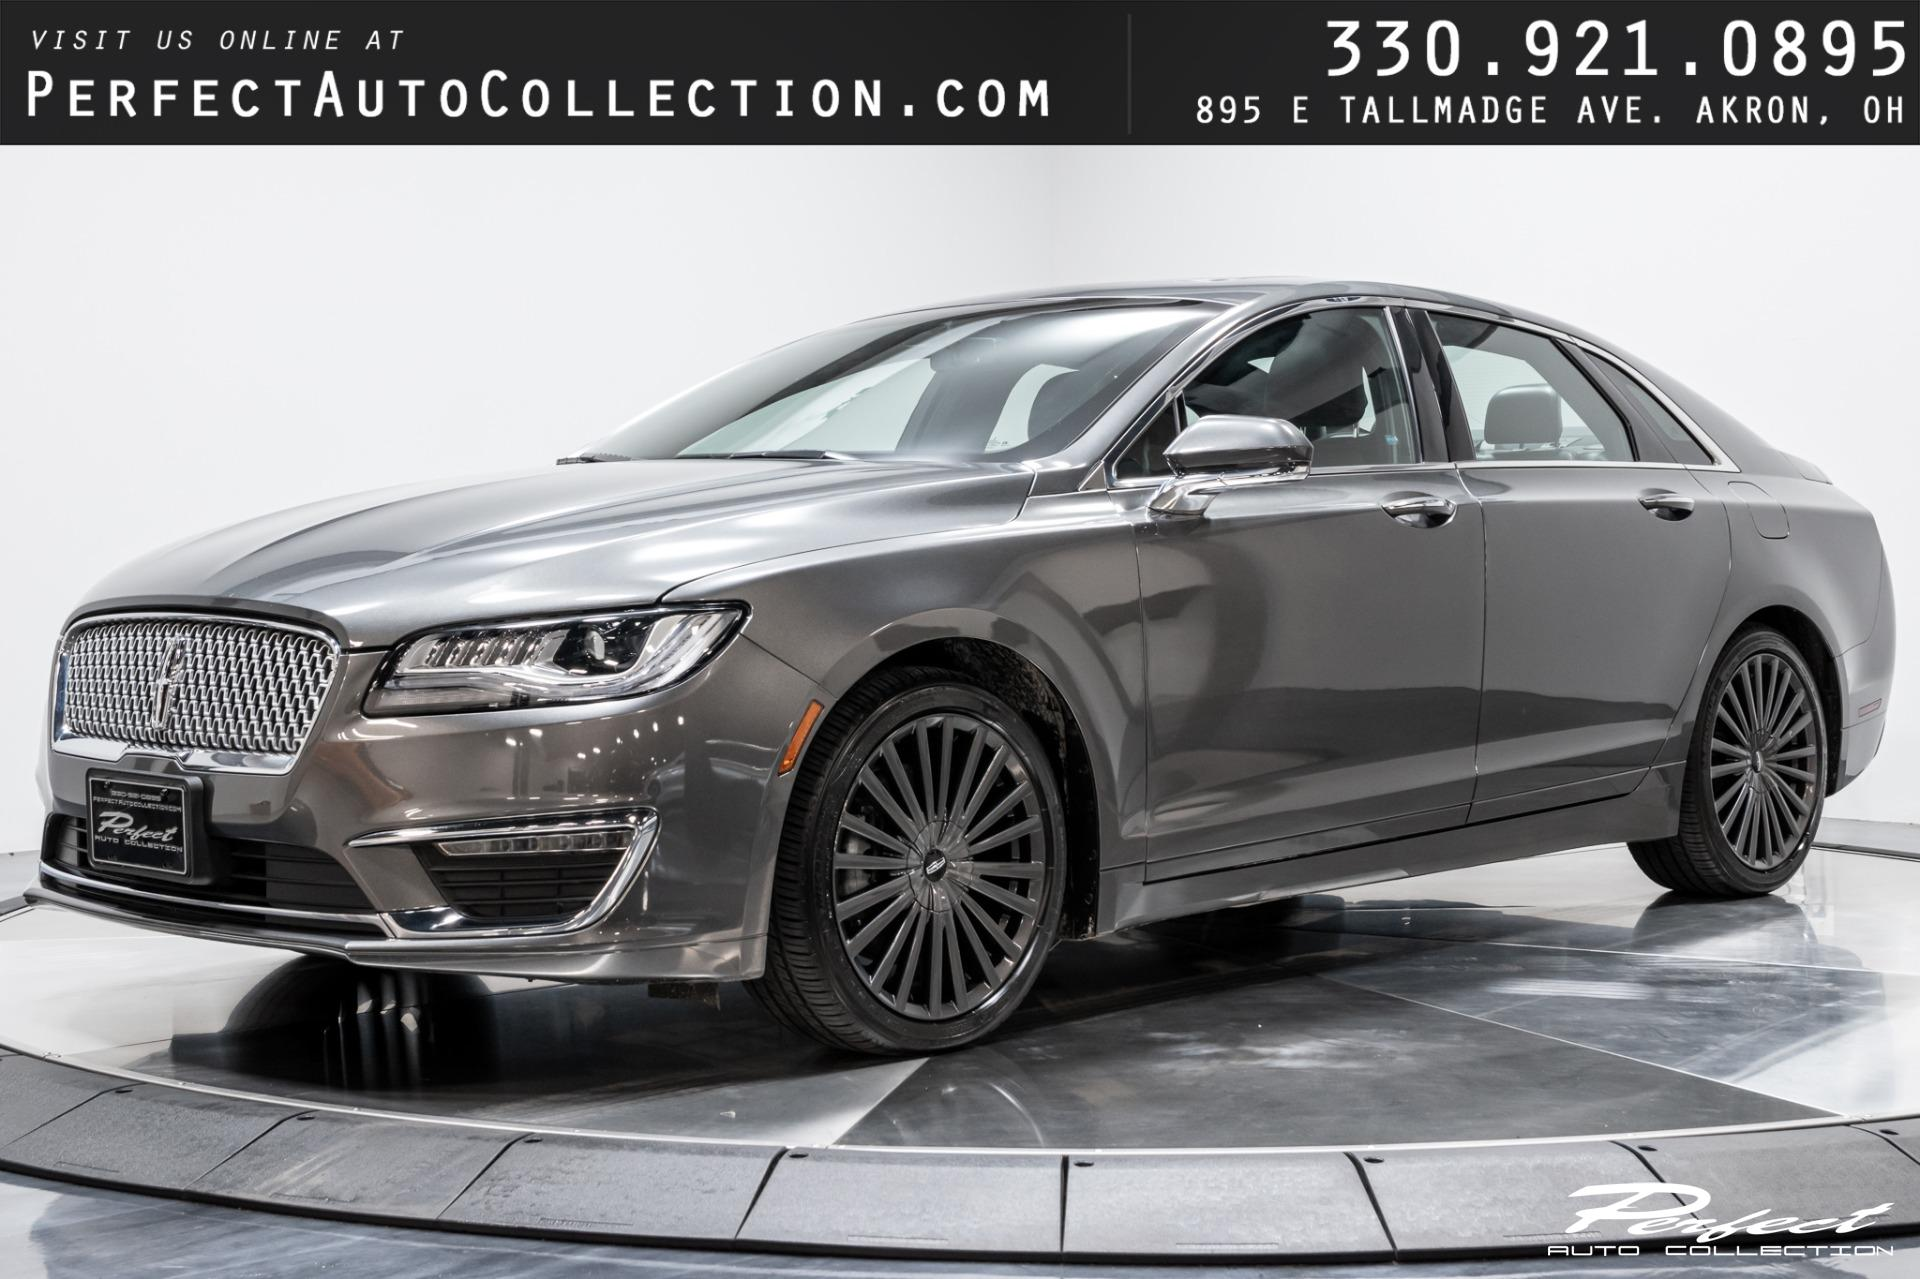 Used 2018 Lincoln MKZ Hybrid Reserve for sale Sold at Perfect Auto Collection in Akron OH 44310 1